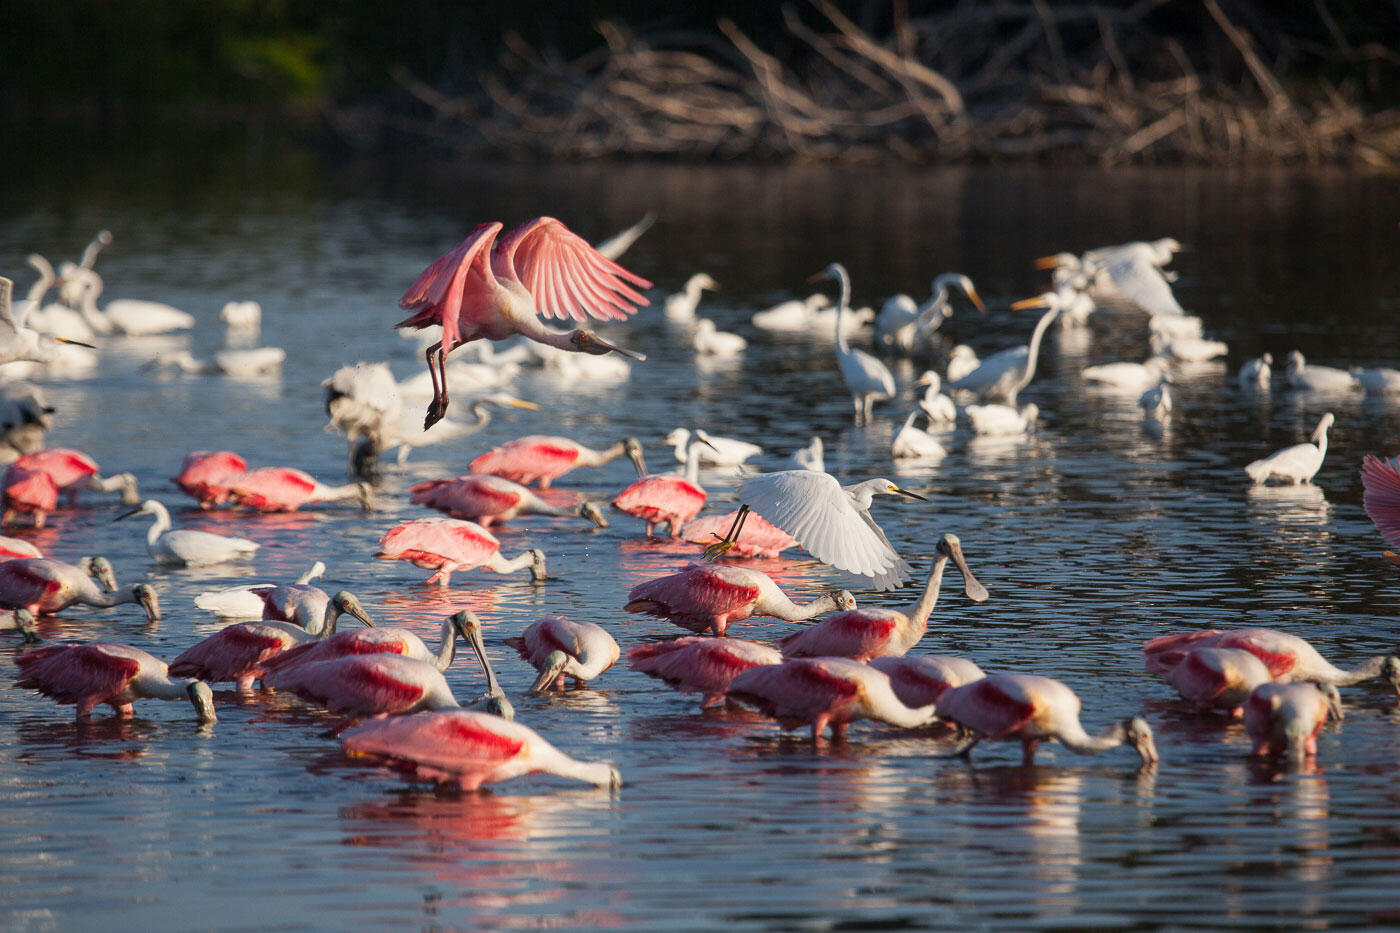 Wading birds forage in freshwater ponds in the Everglades. Mac Stone